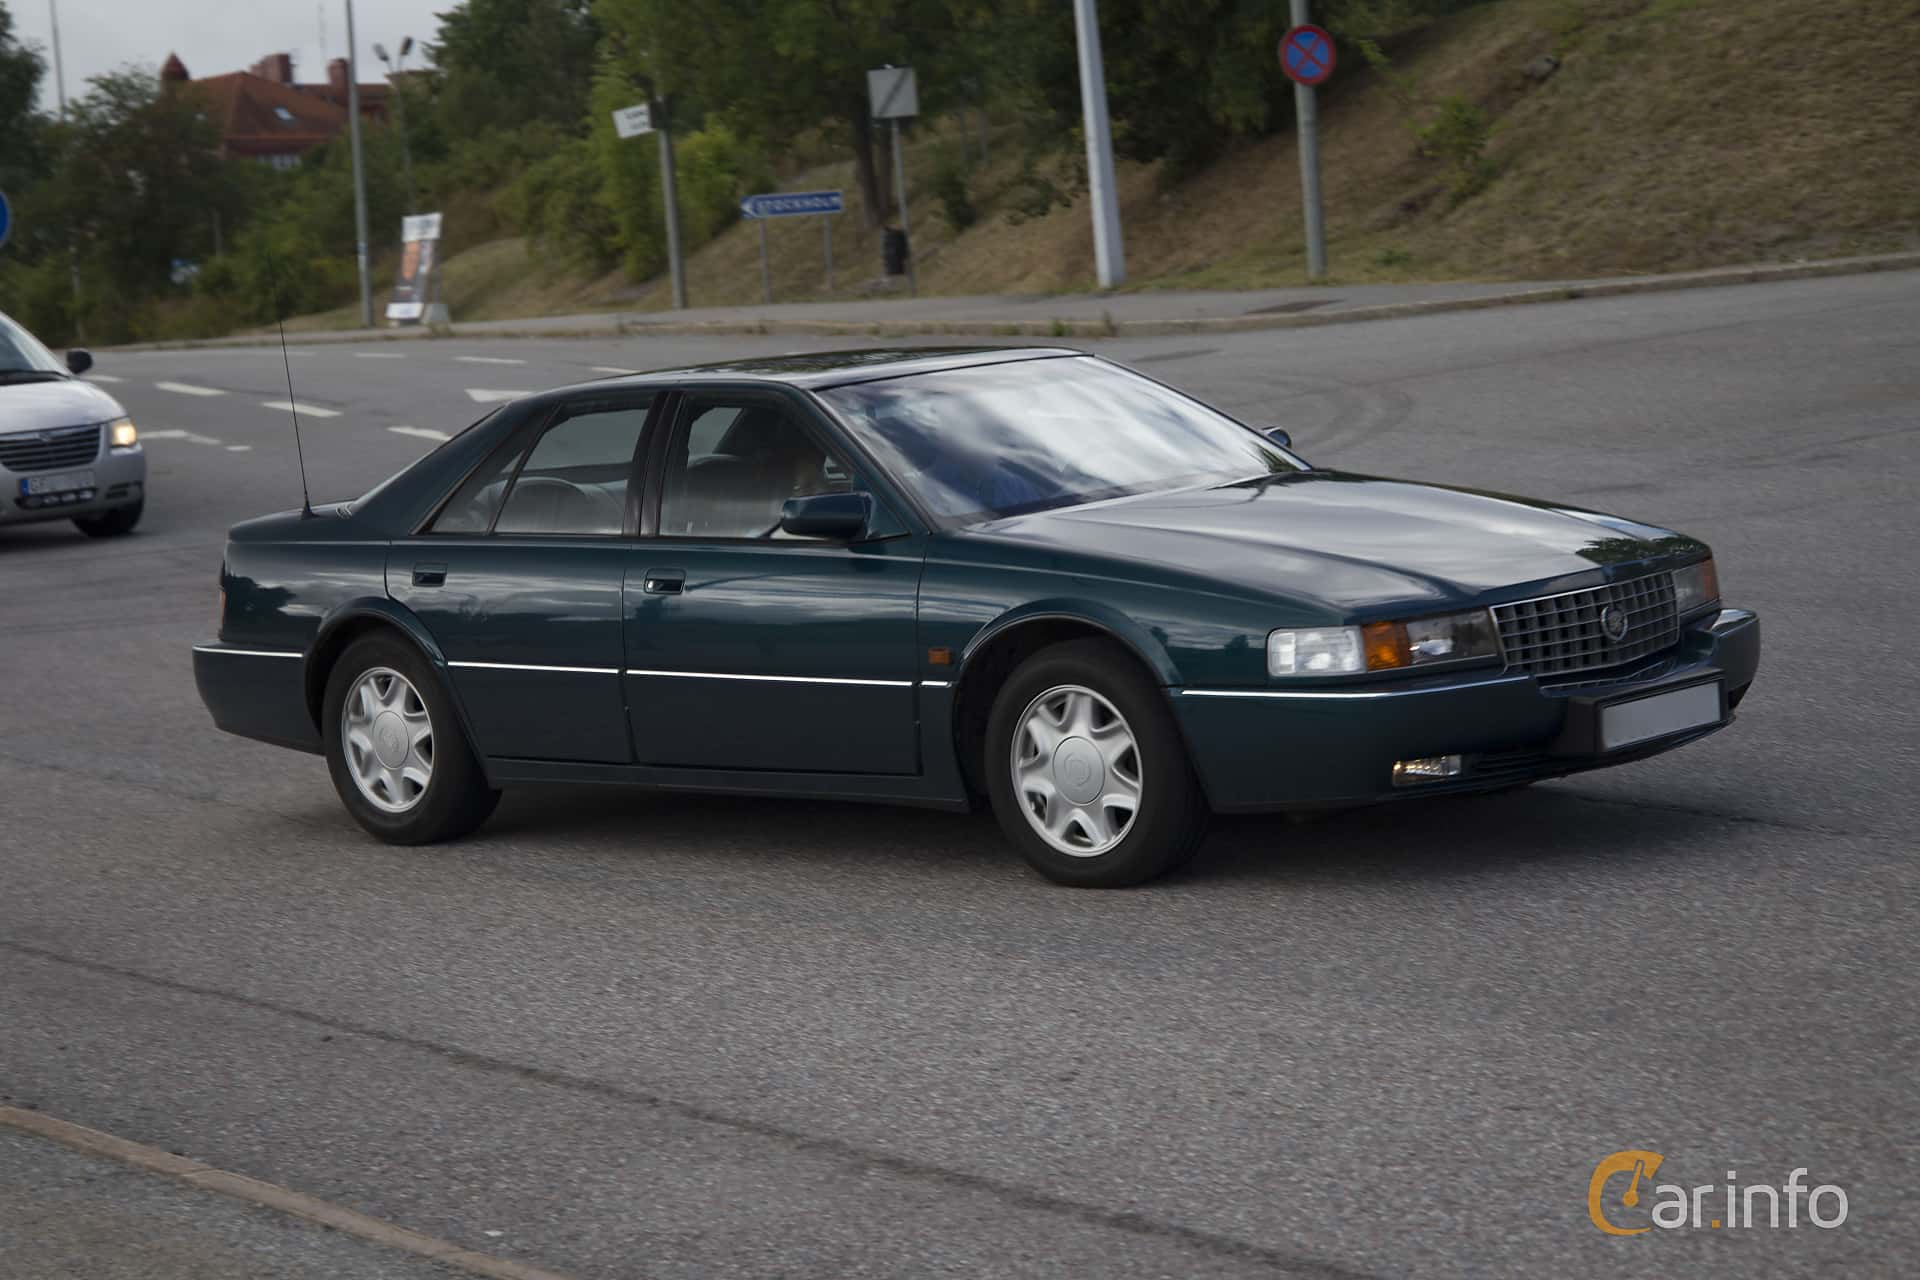 1 Images Of Cadillac Seville Sts 4 6 V8 Automatic 305hp 1995 By Pelle